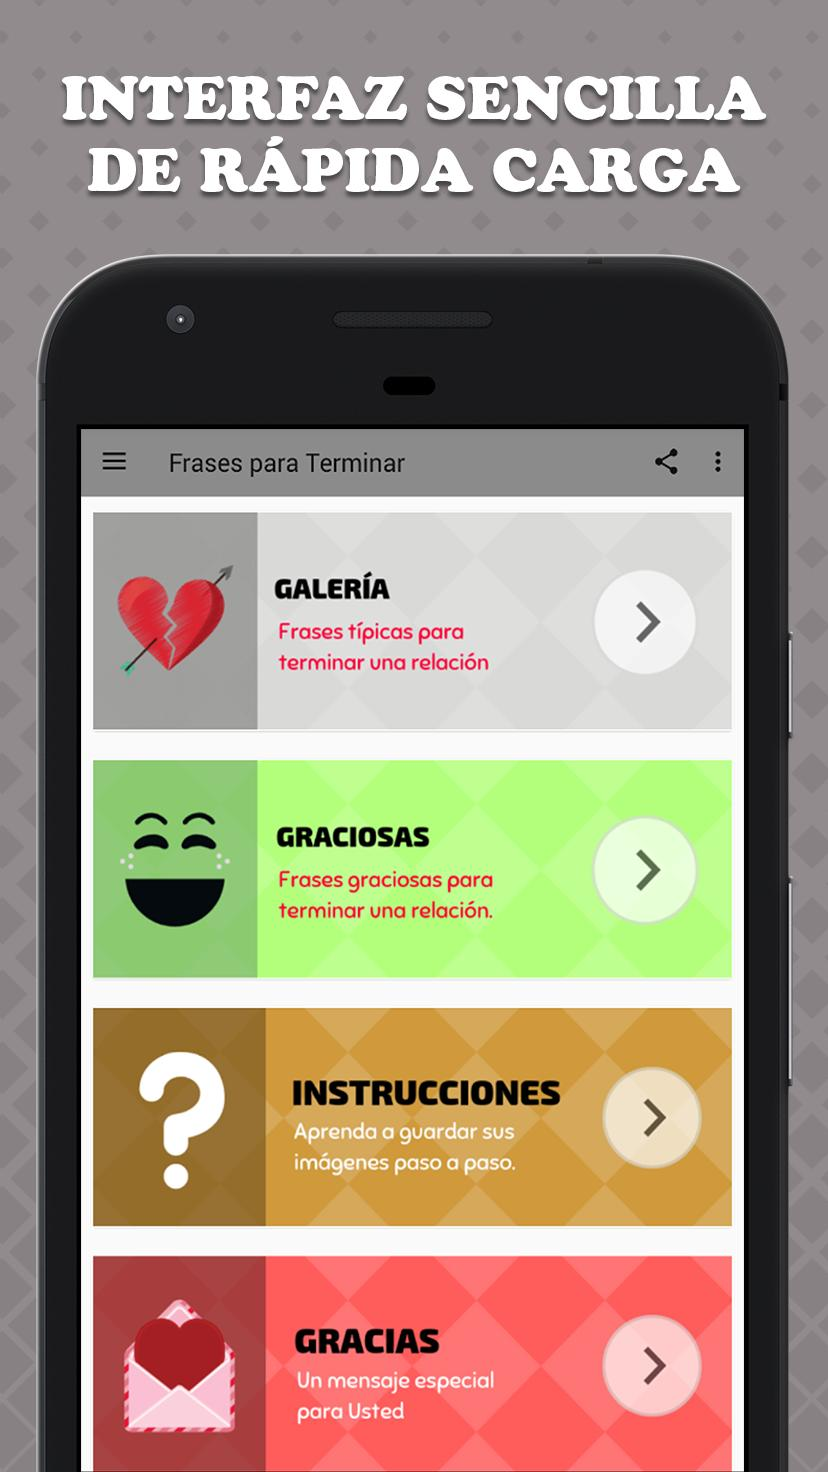 Frases Para Terminar For Android Apk Download